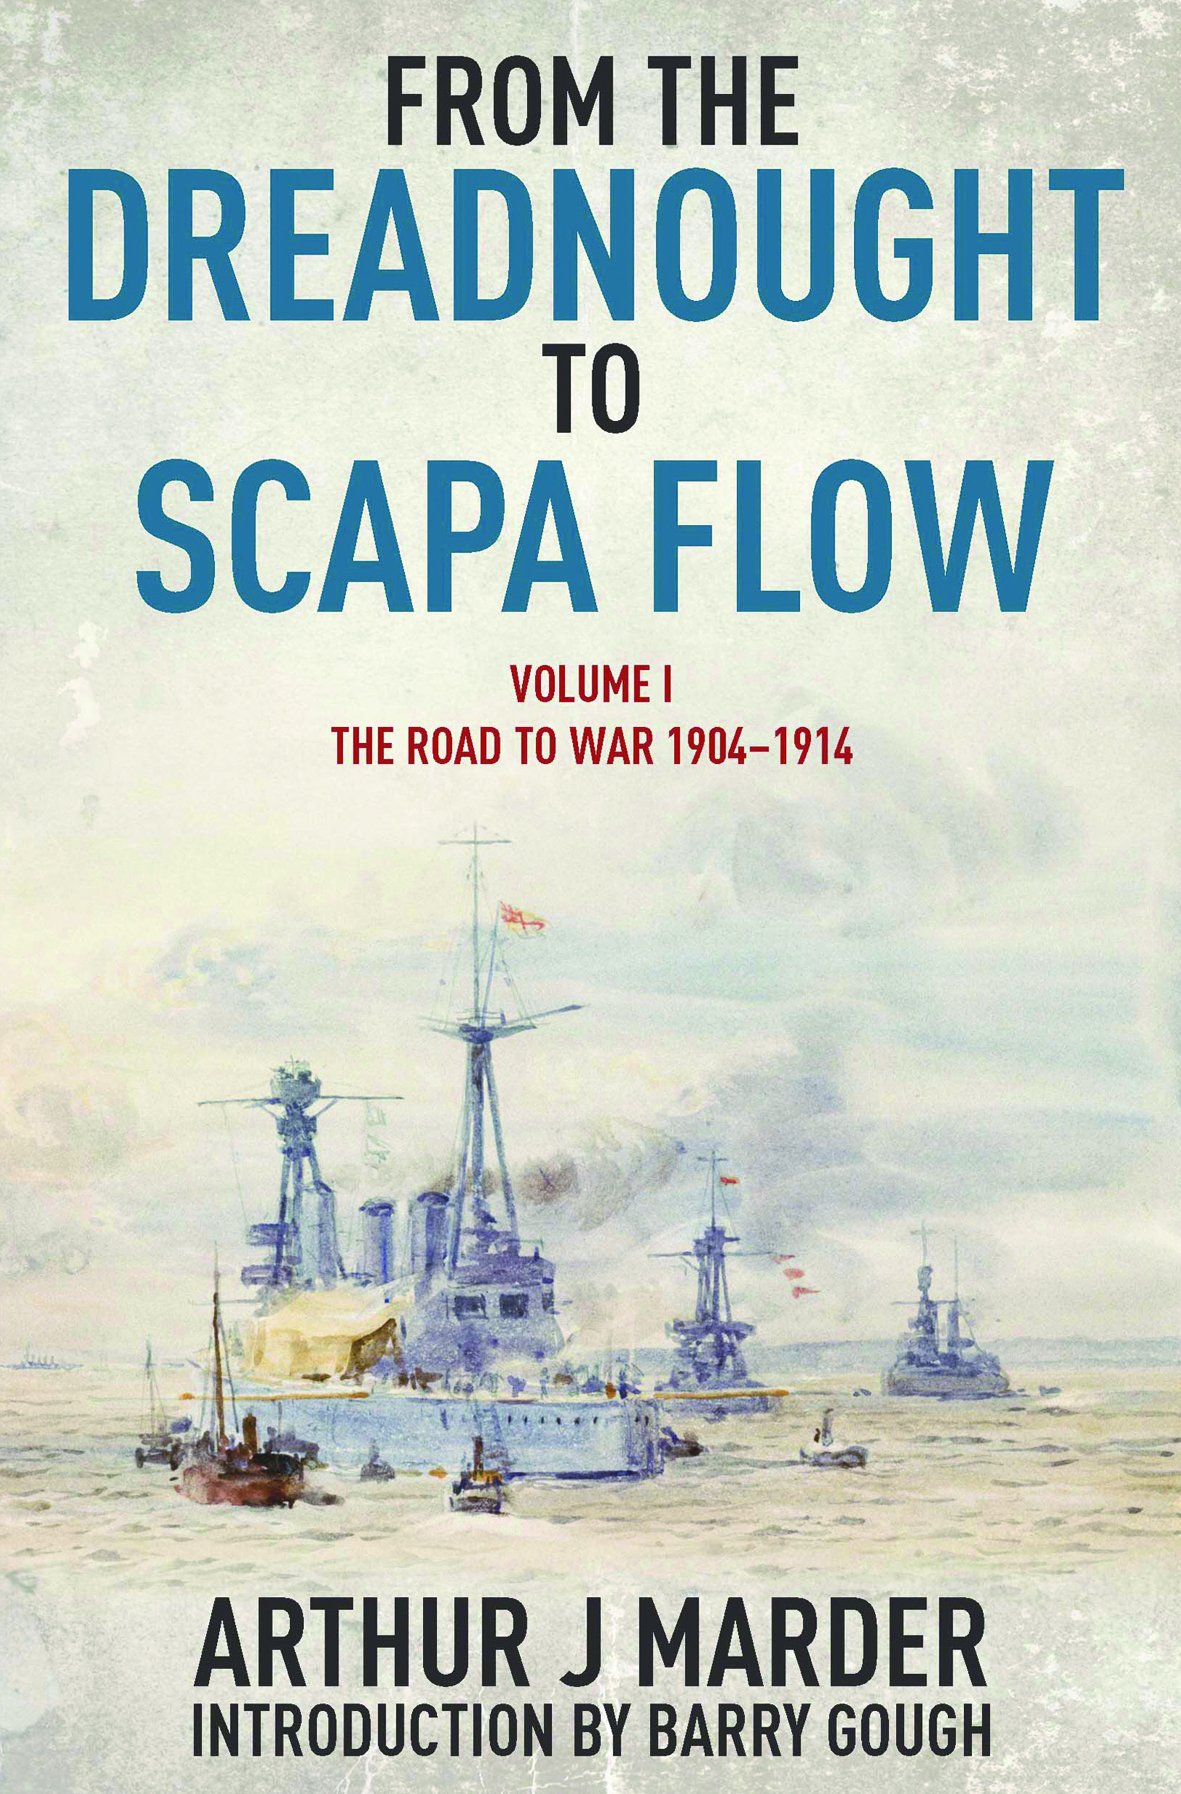 From the Dreadnought to Scapa Flow: Volume I: The Road to War 1904-1914 ebook